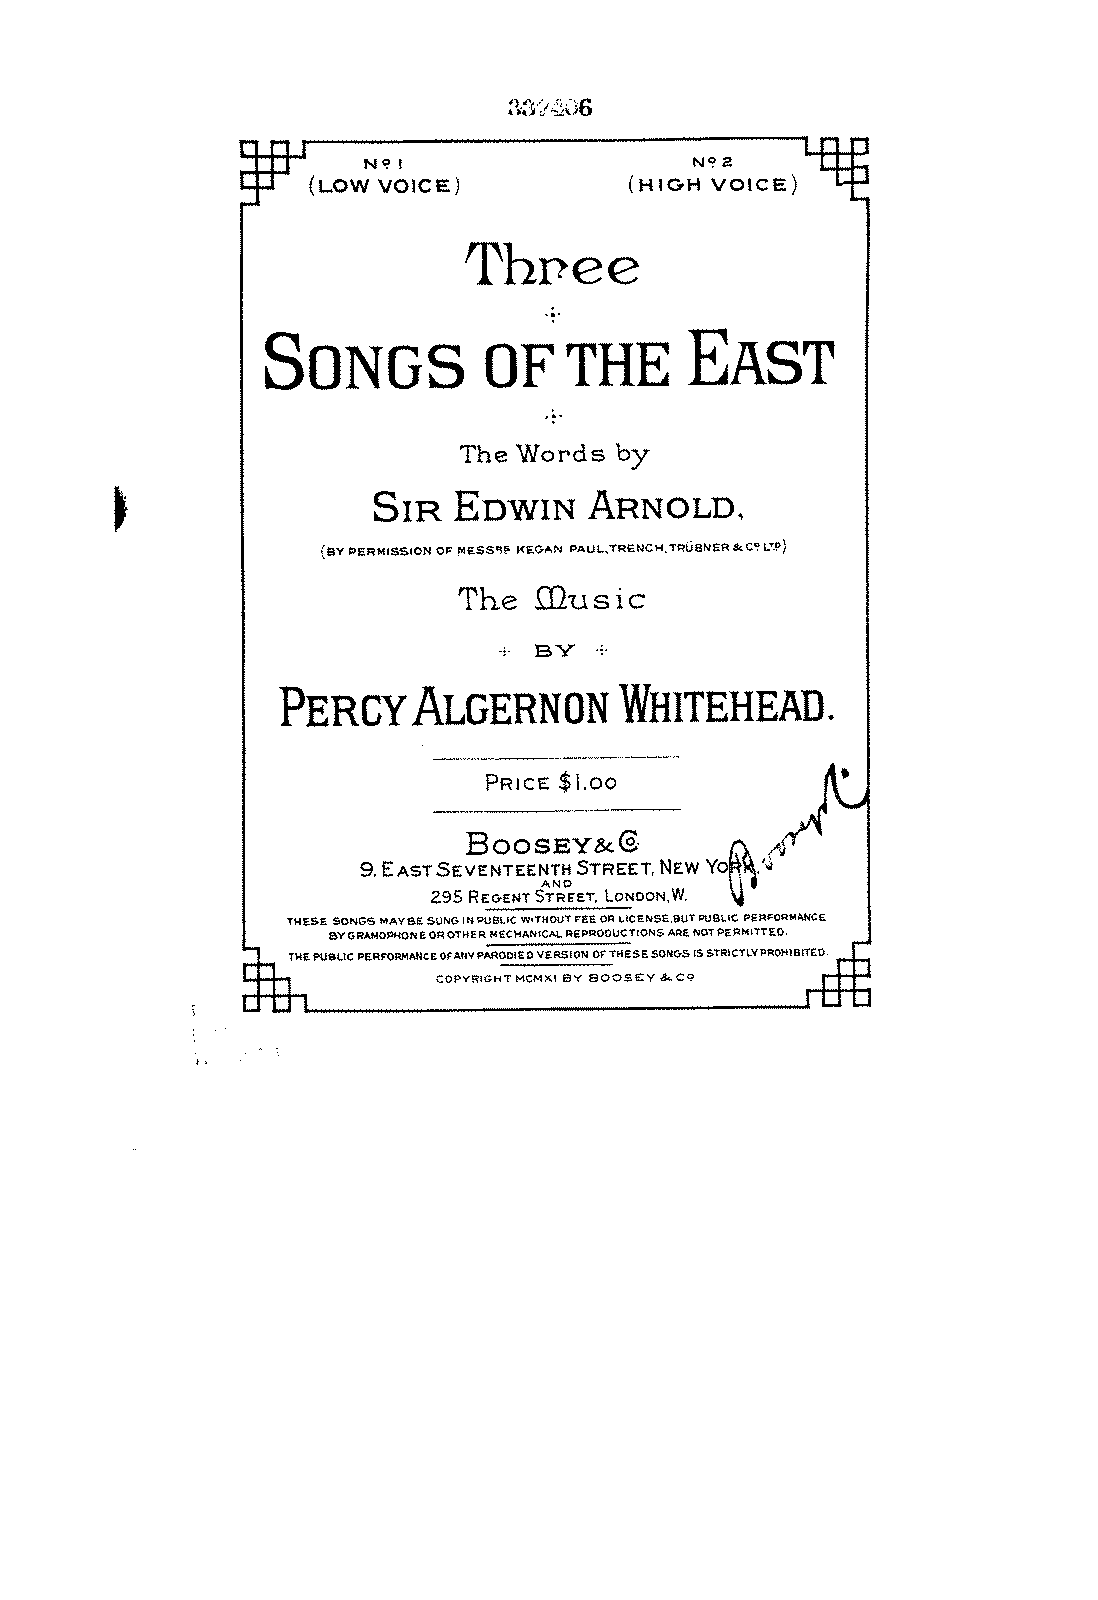 PMLP183373-Whitehead - 3 Songs of the East LV.pdf